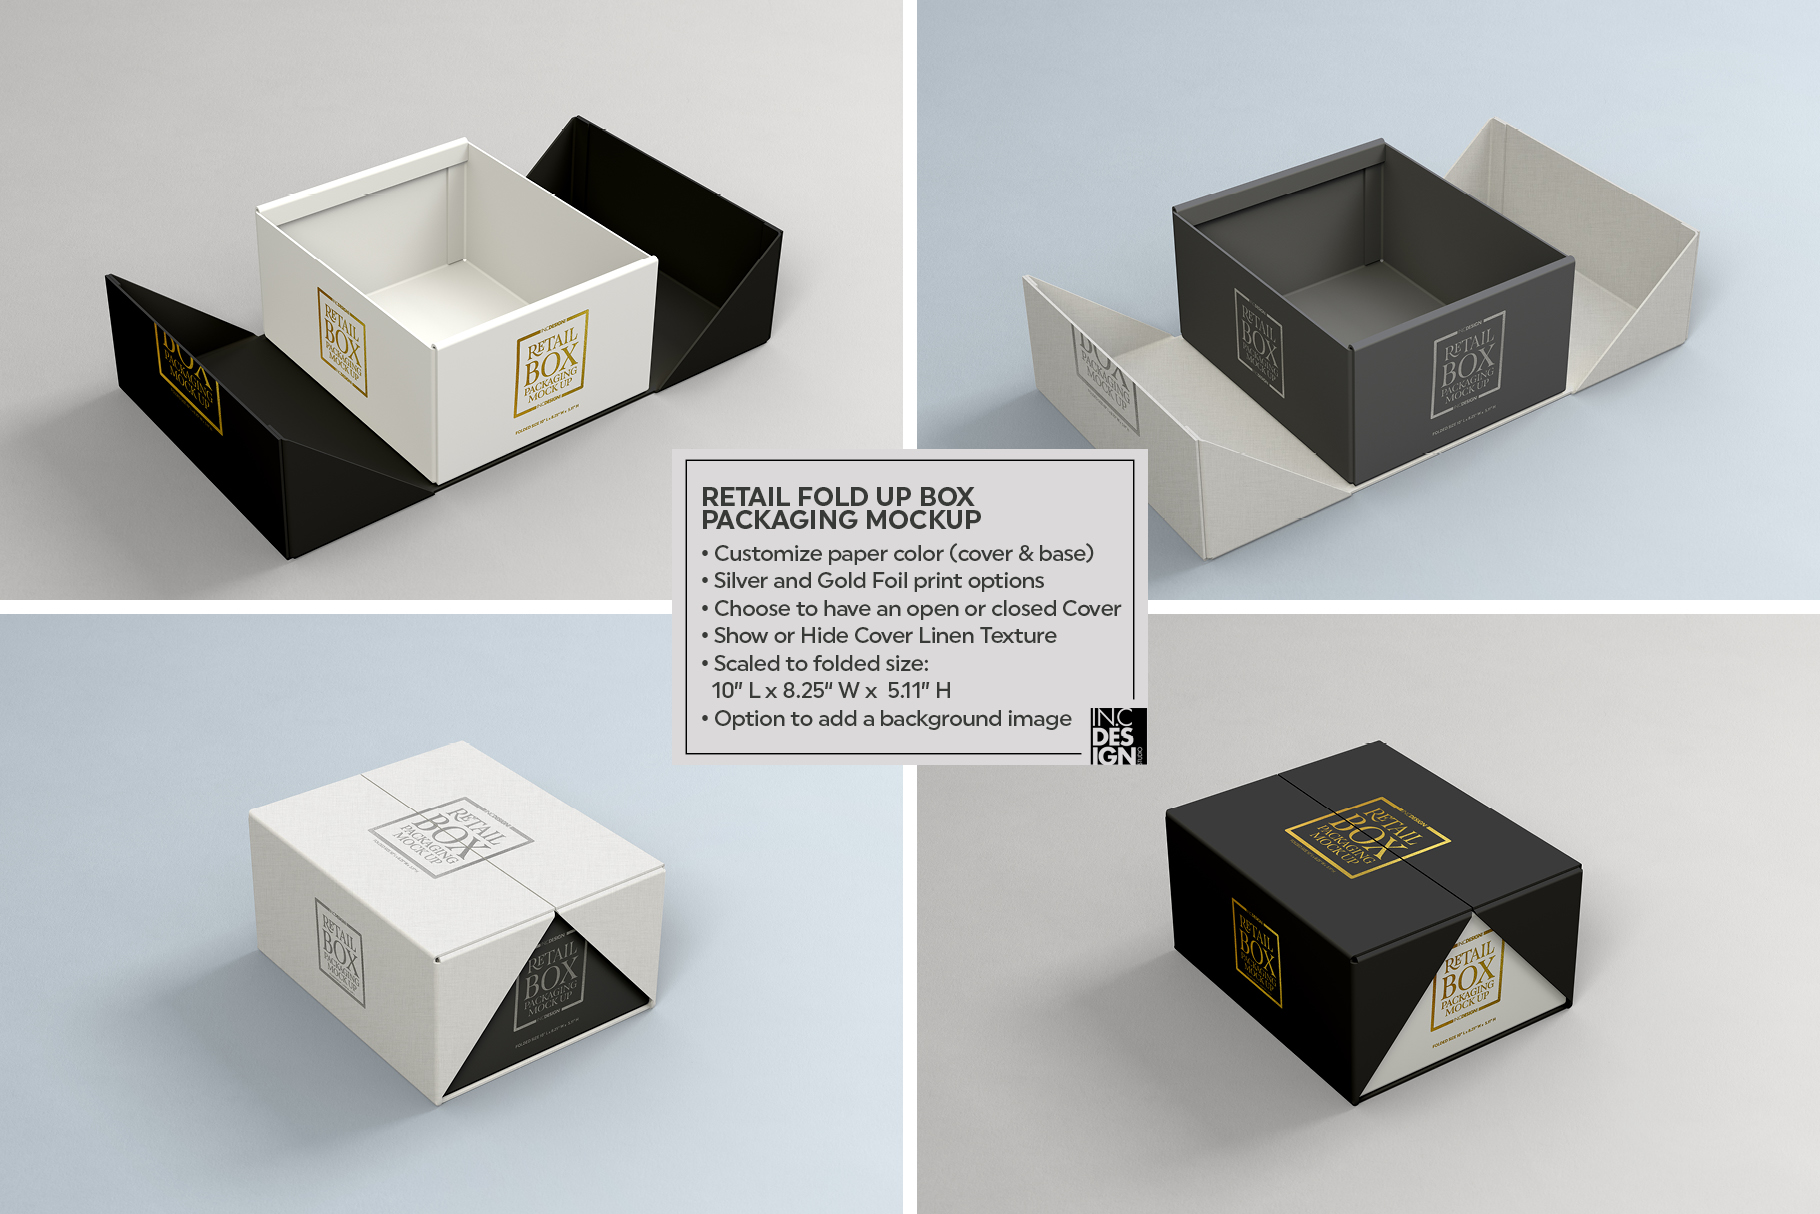 Fold Up Retail Box Packaging Mockup example image 3